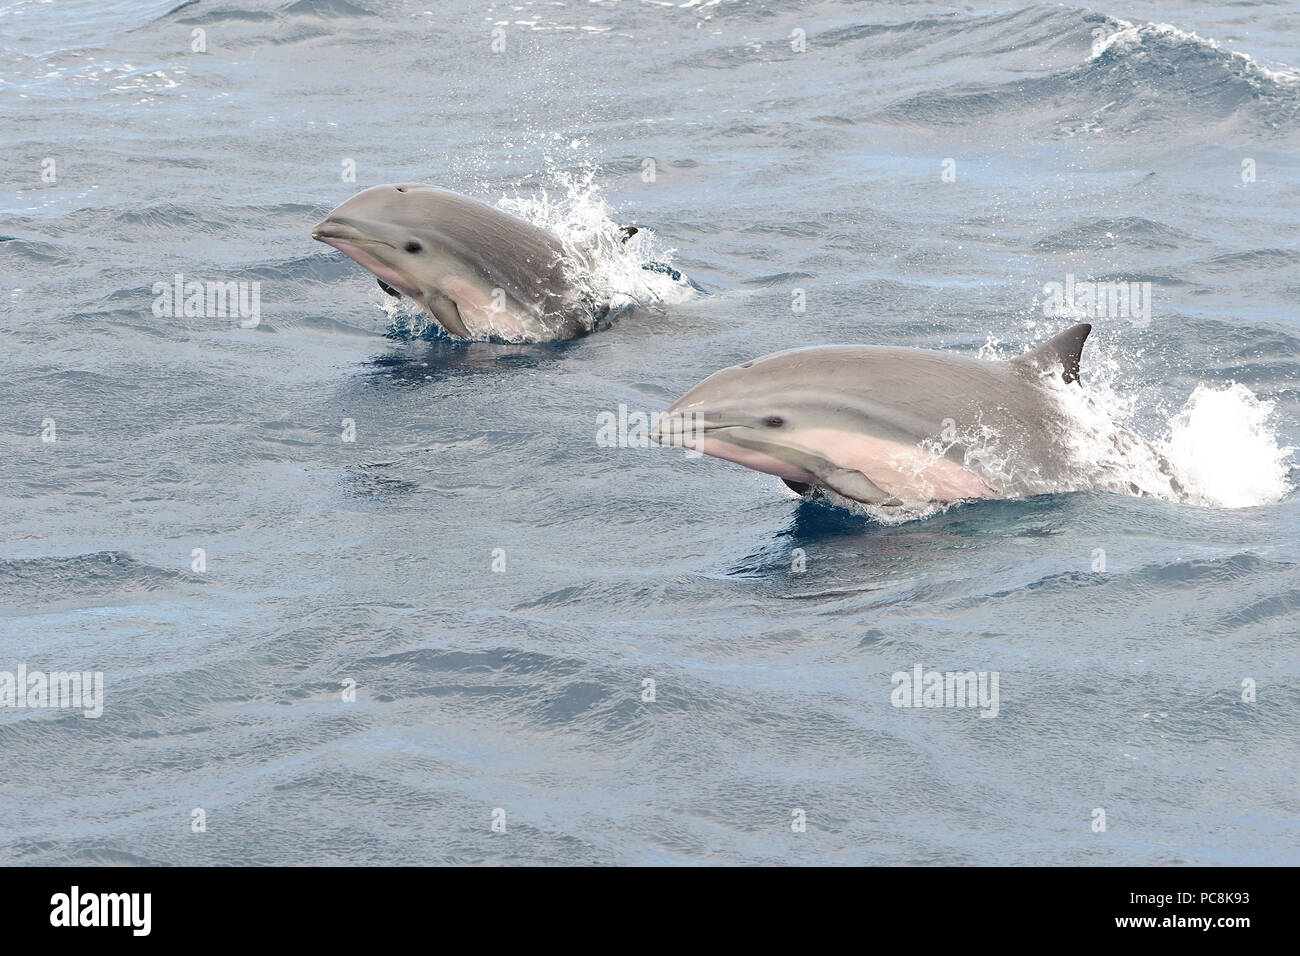 Portrait of two Fraser dolphins jumping out of the water - Stock Image